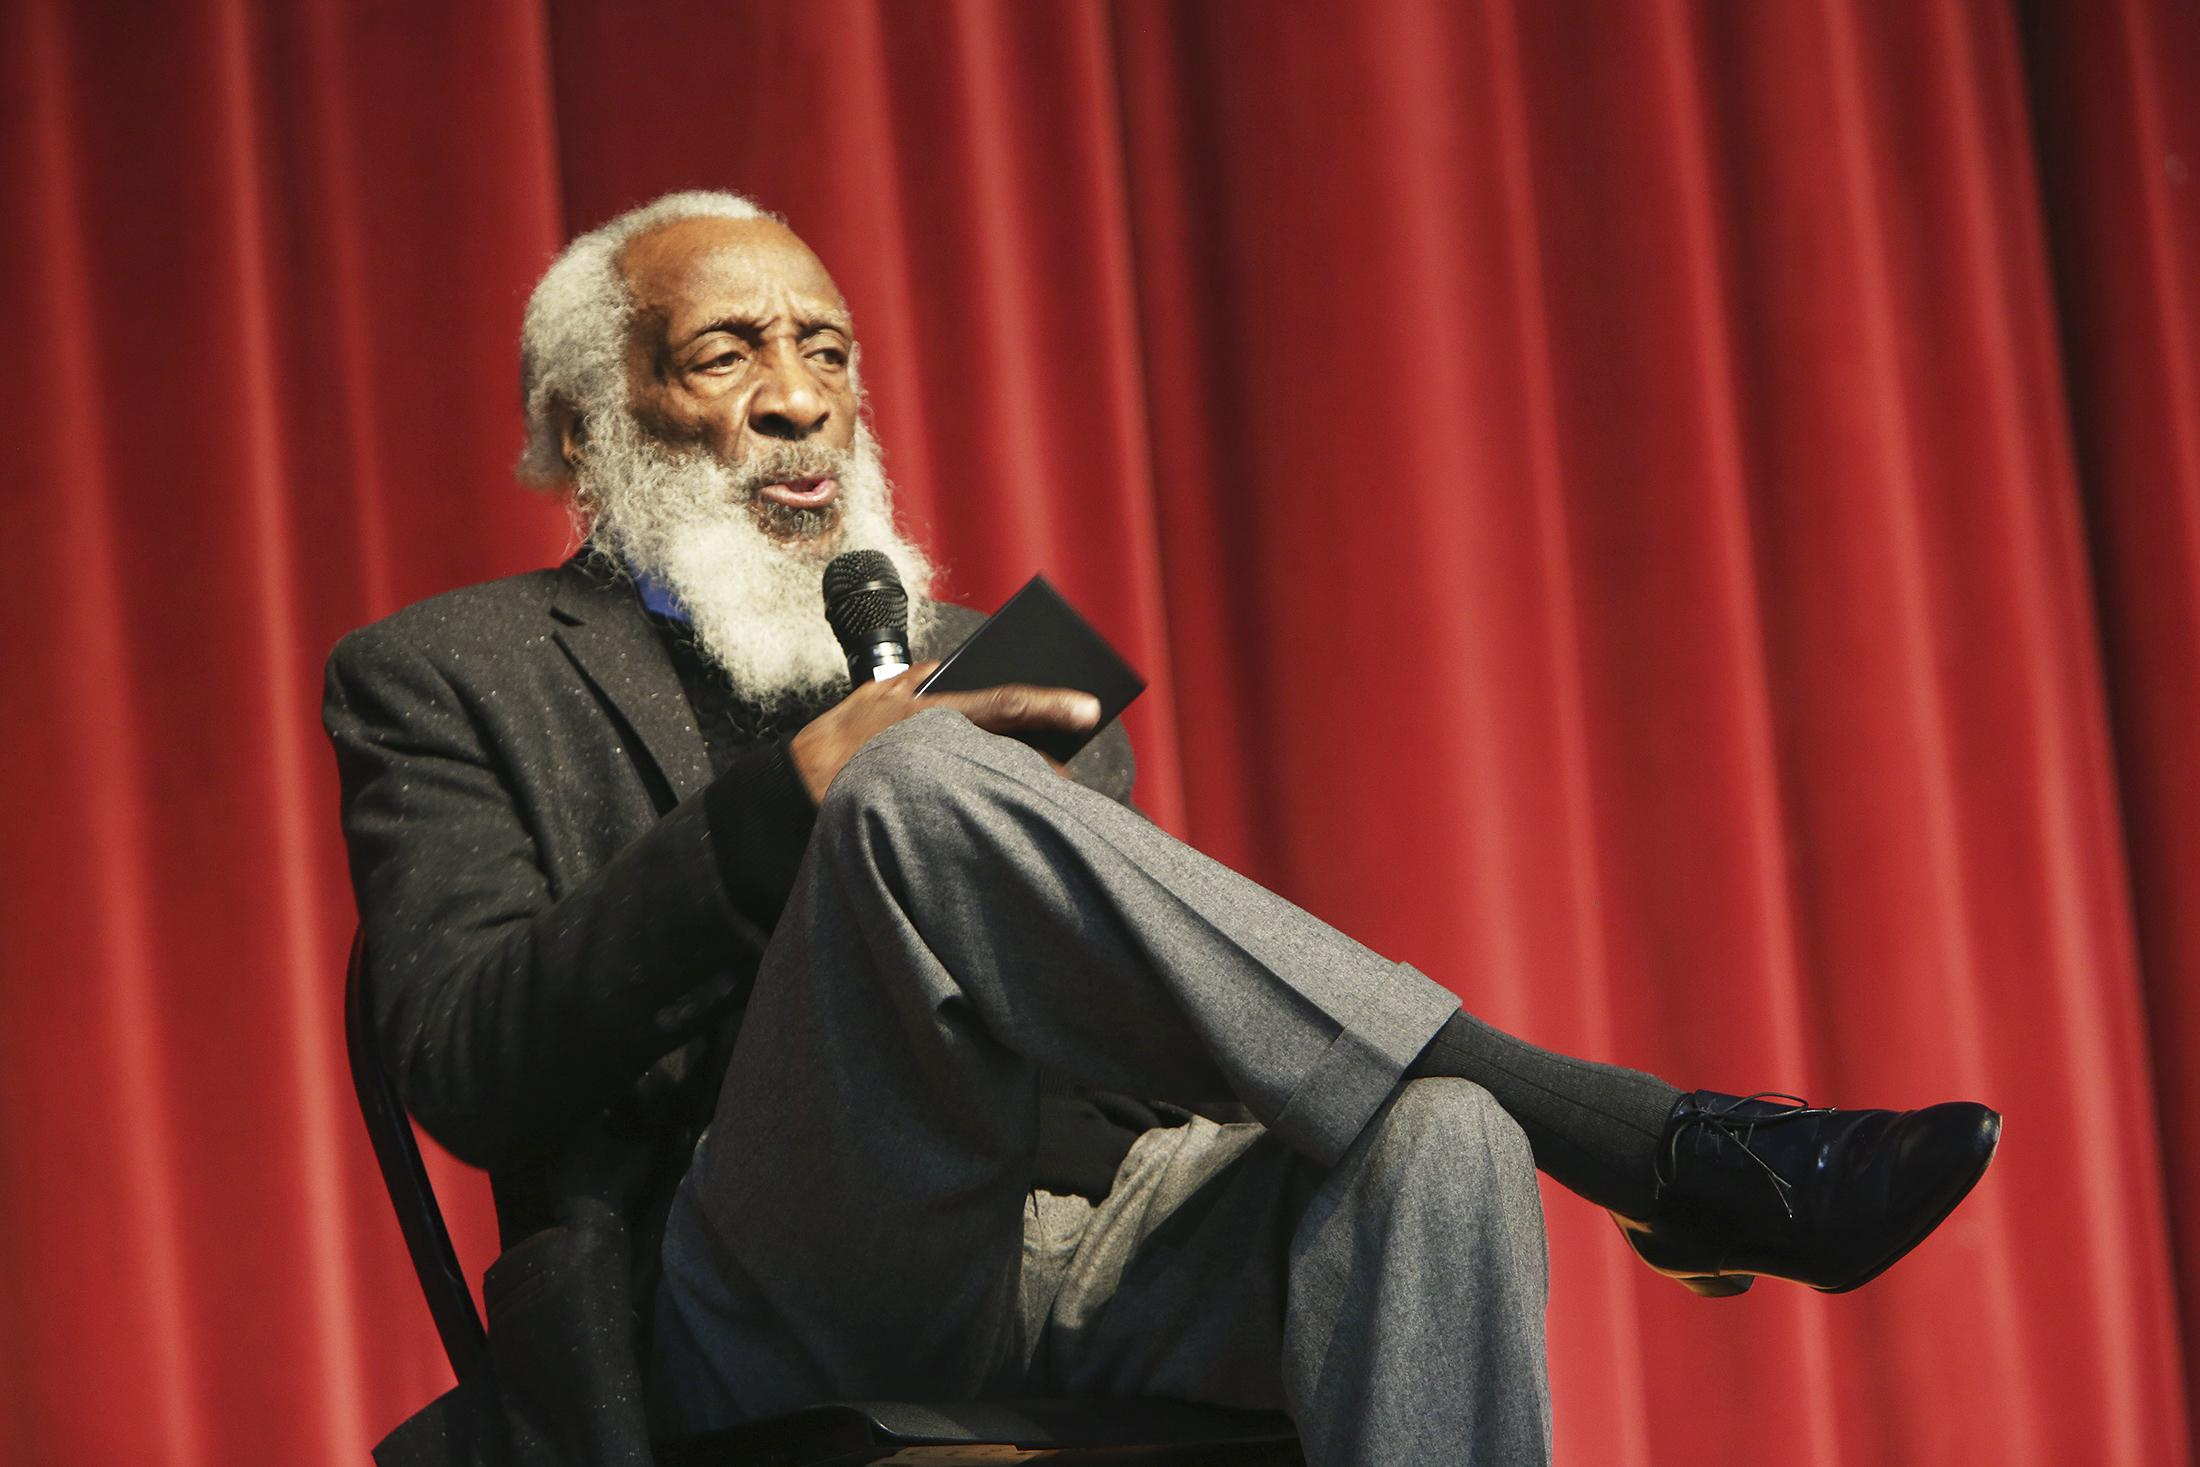 Dick Gregory dead: Comedian and civil rights activist dies, aged 84 | The Independent